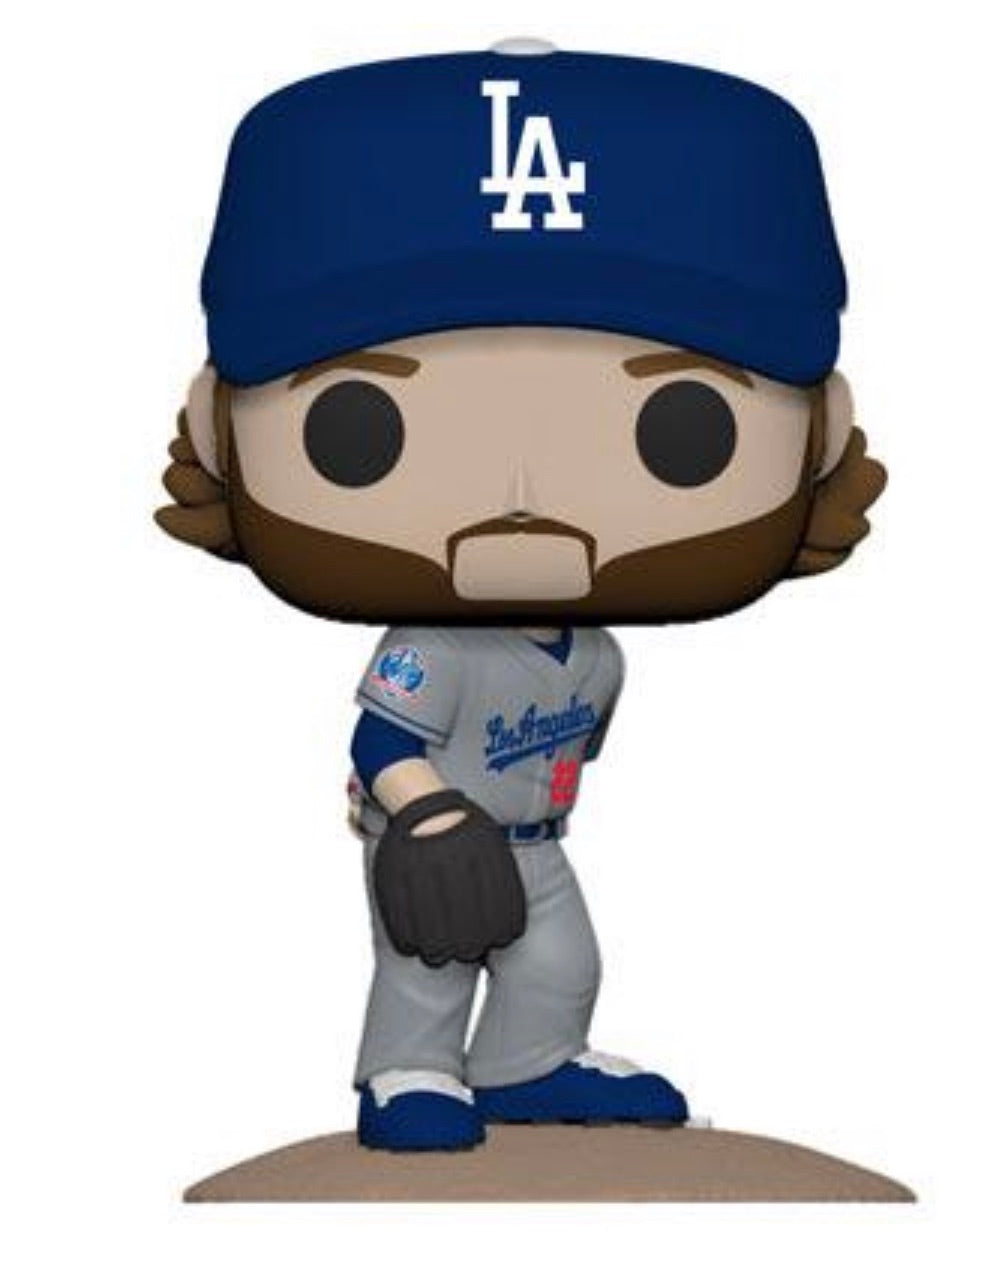 MLB FUNKO POP! CLAYTON KERSHAW (ROAD) (PRE-ORDER)